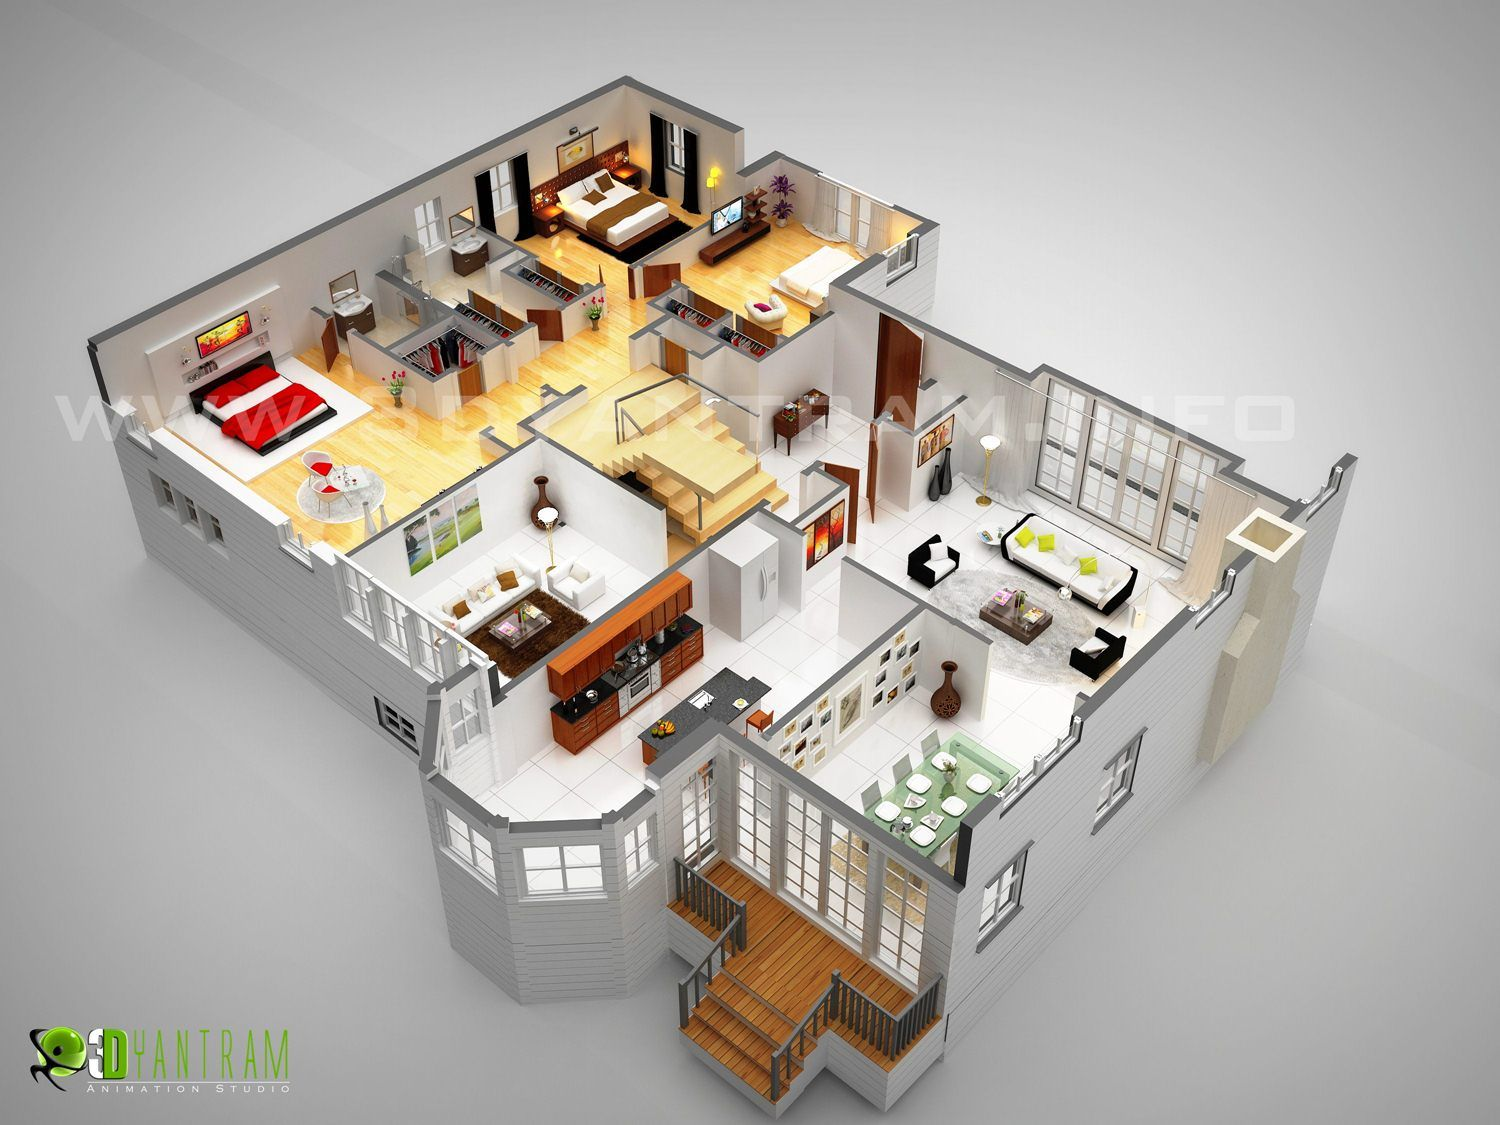 Laxurious residential 3d floor plan paris sims Home plan 3d